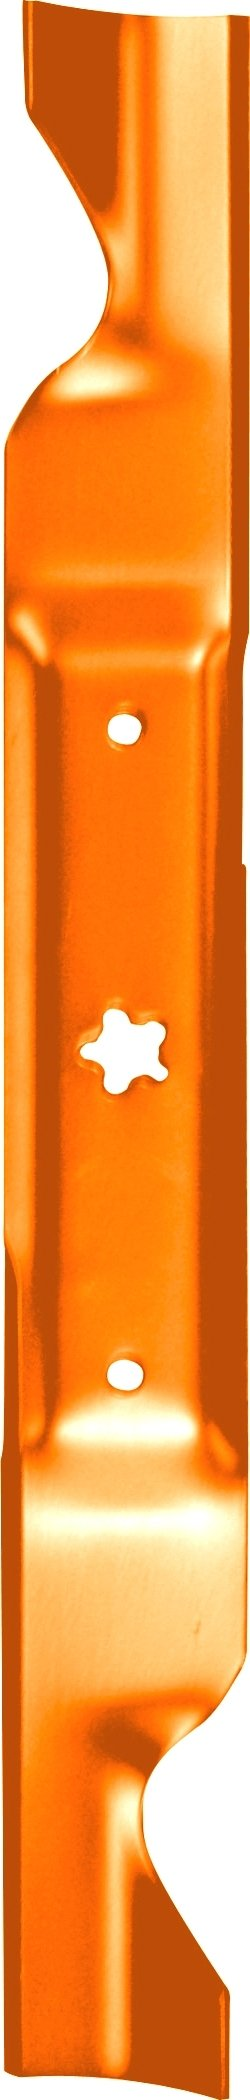 Husqvarna HU21462 46-Inch Premium Hi-Lift Bagging Blade, 2-Pack, Orange by Husqvarna